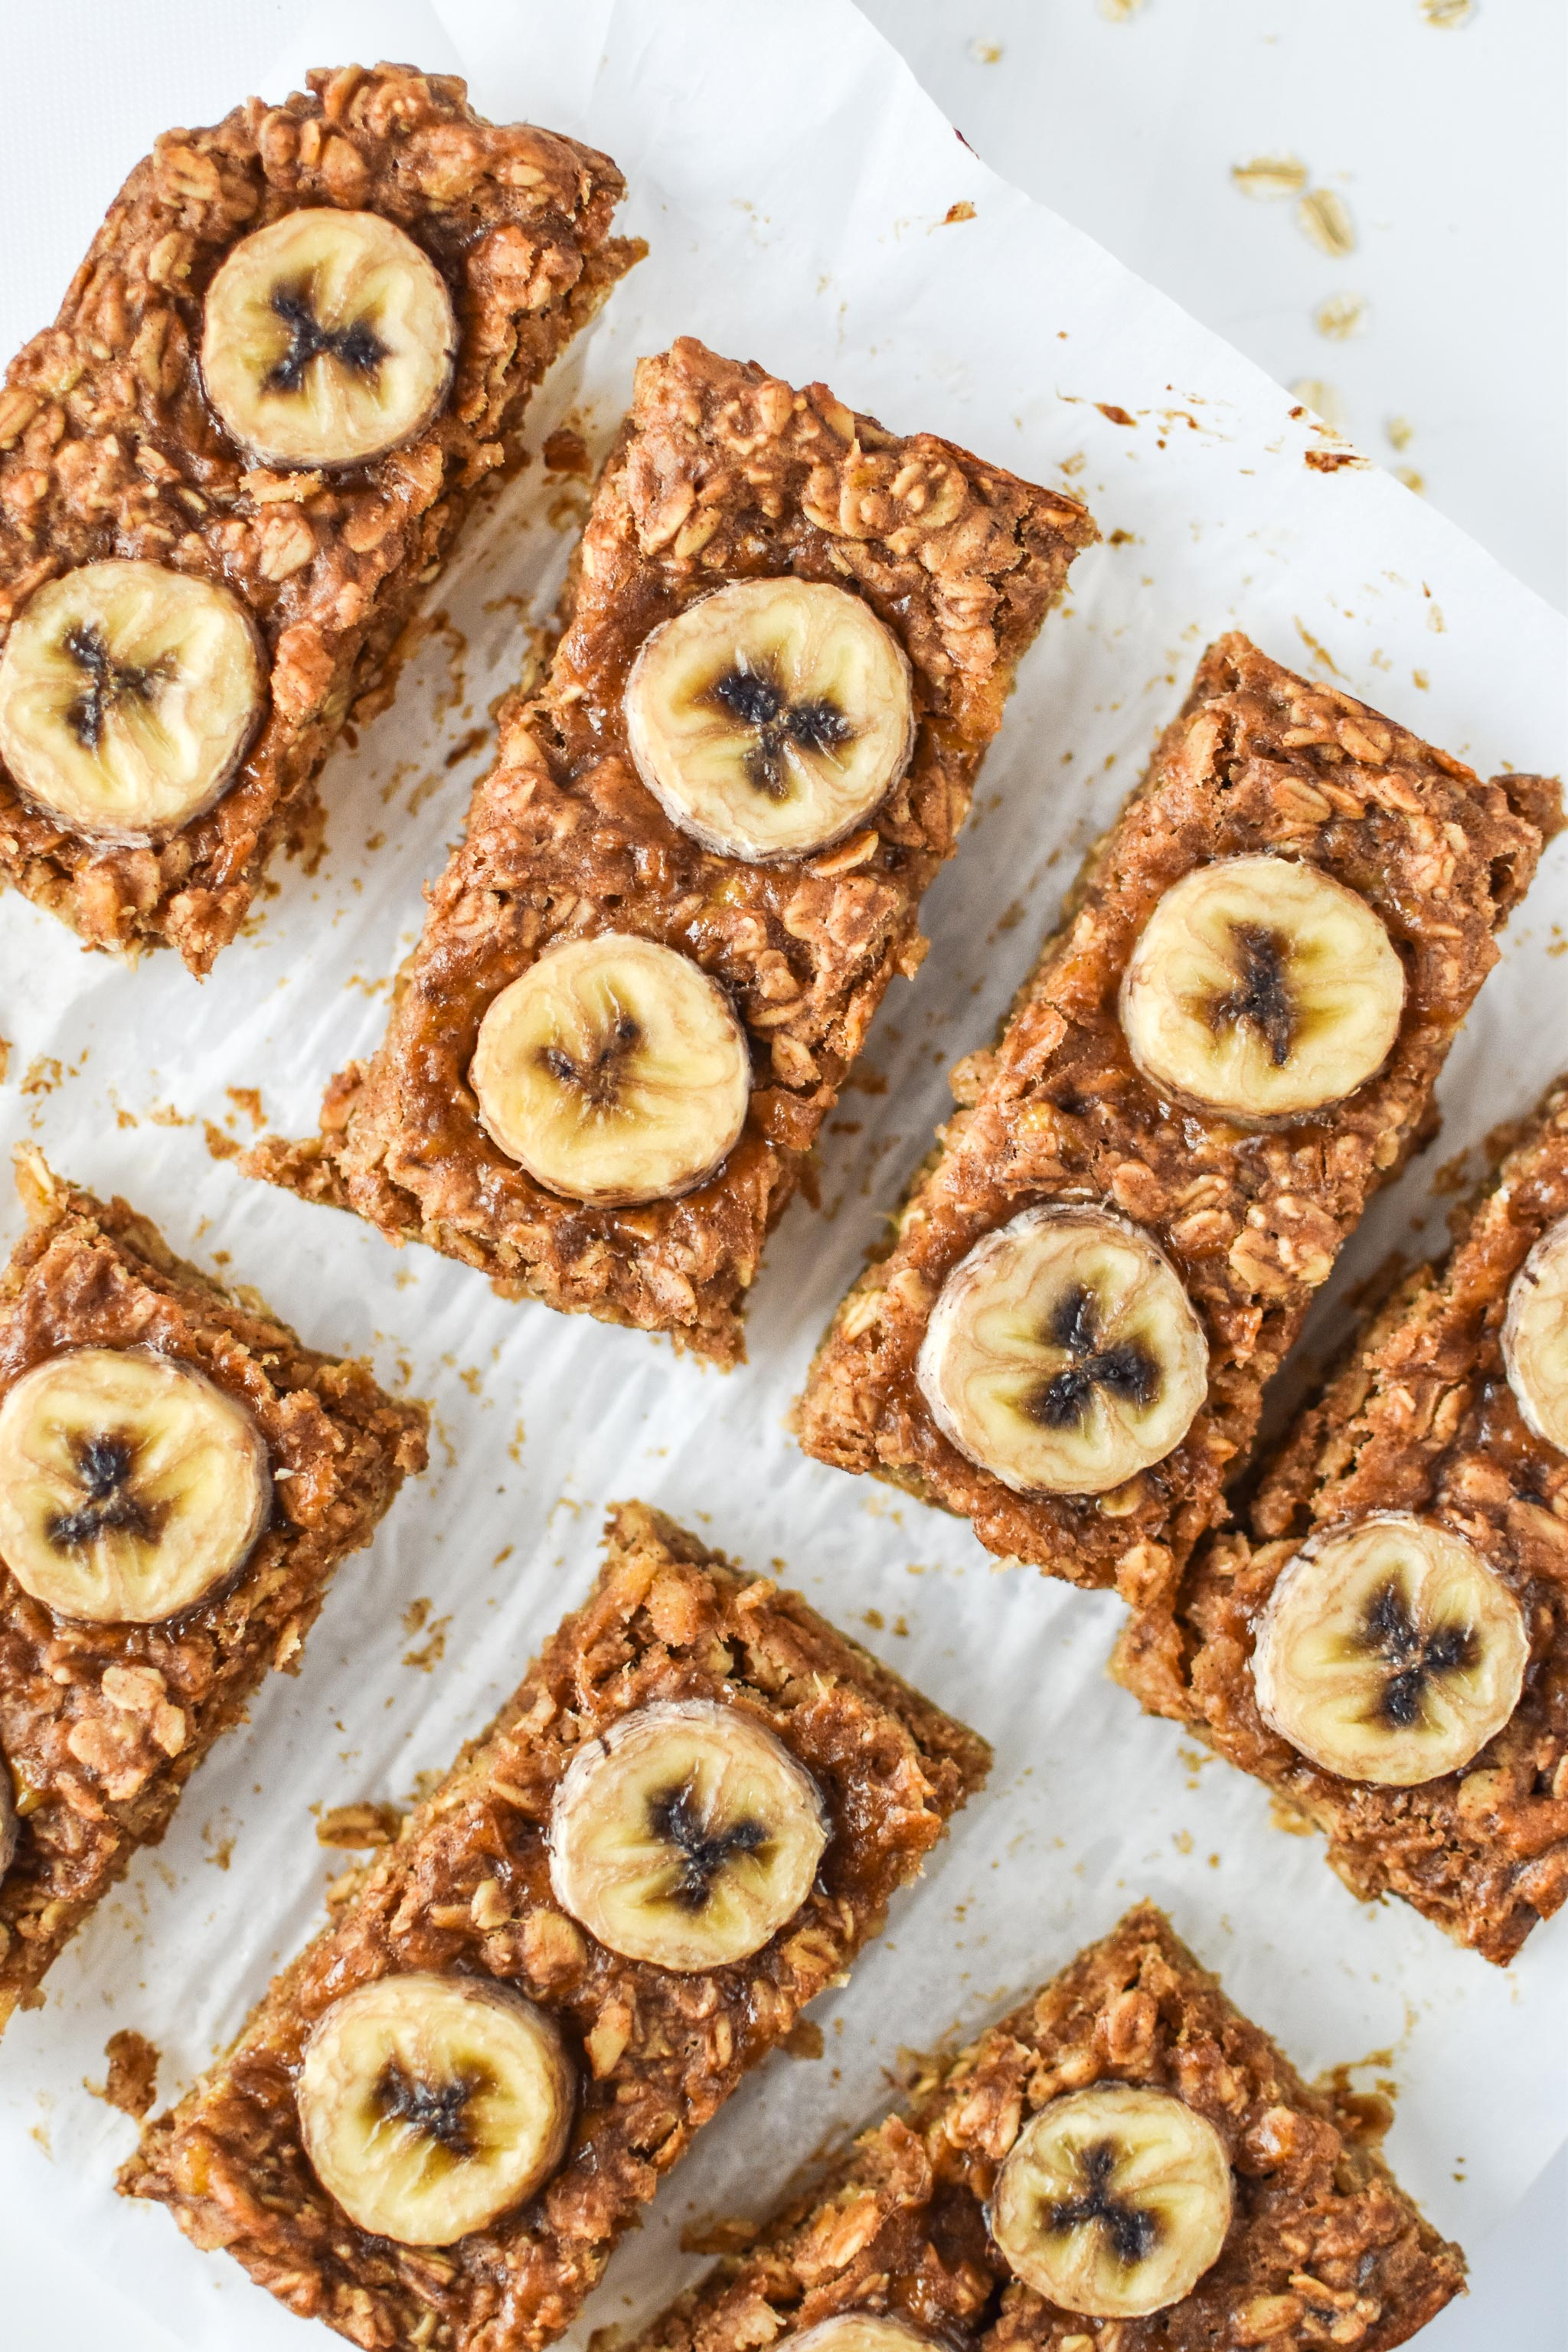 Banana Oatmeal Breakfast Bars fresh from the oven and cut into bars.